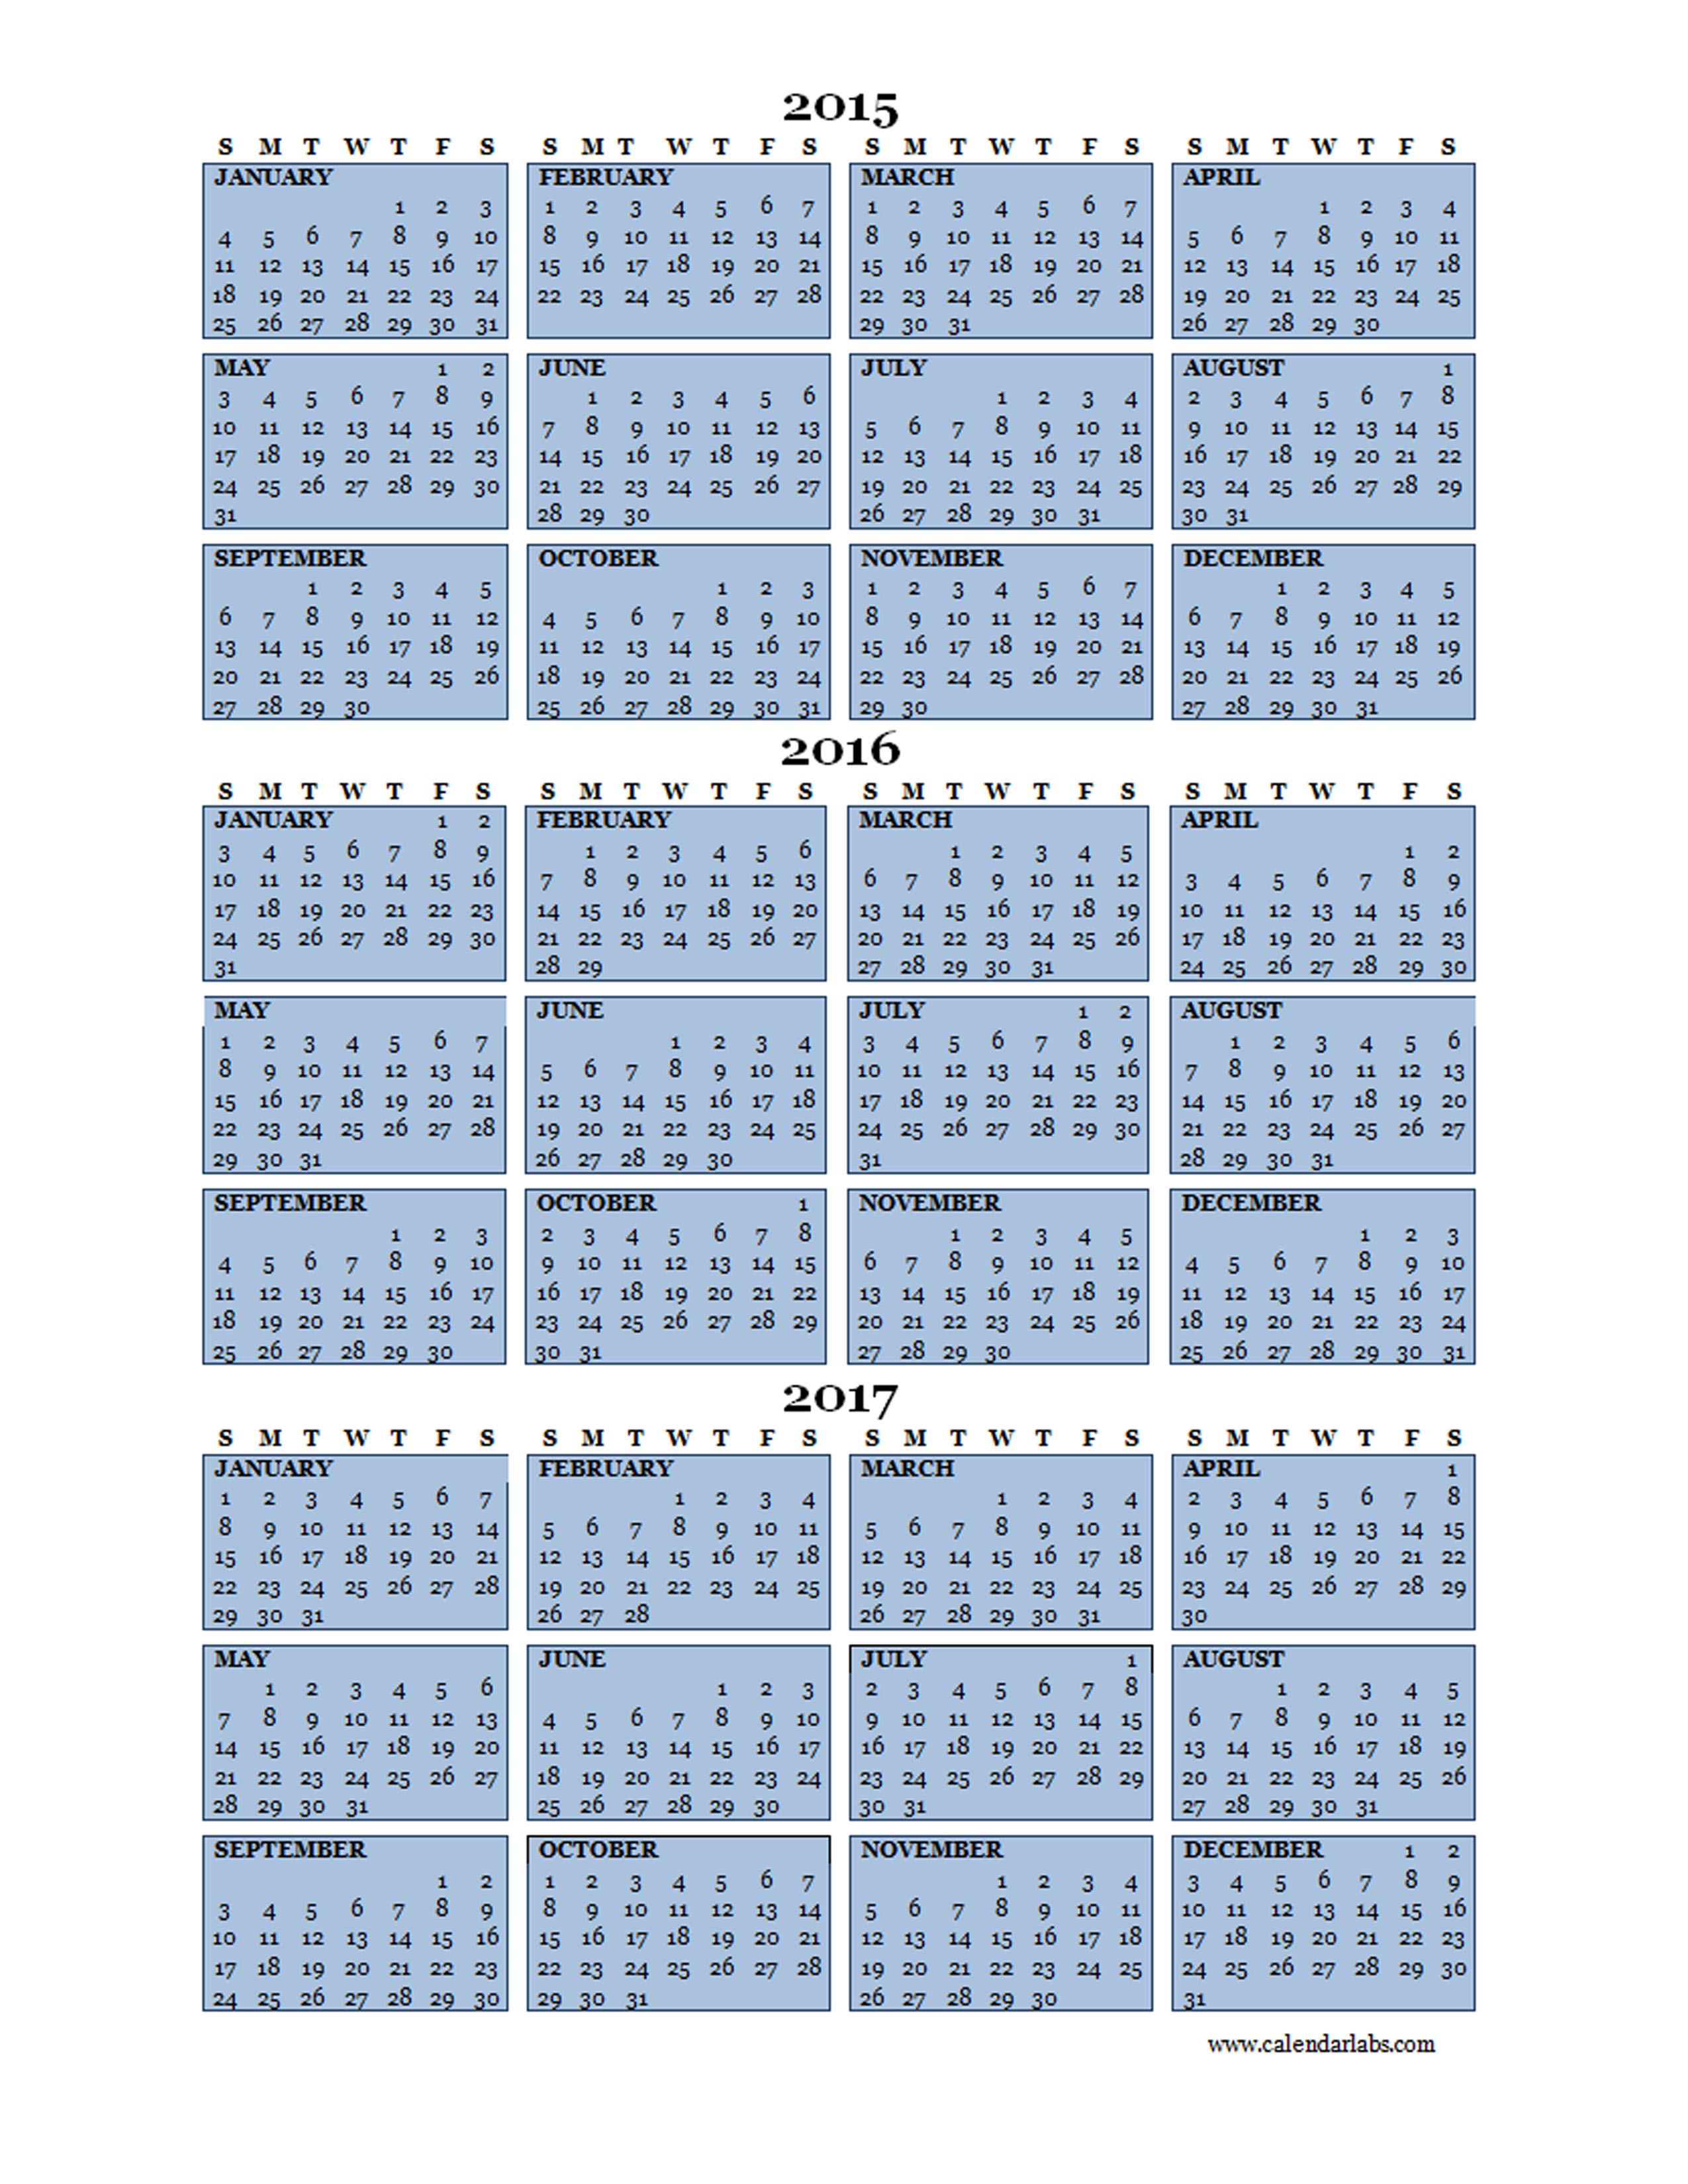 Yearly Calendar Template to Download